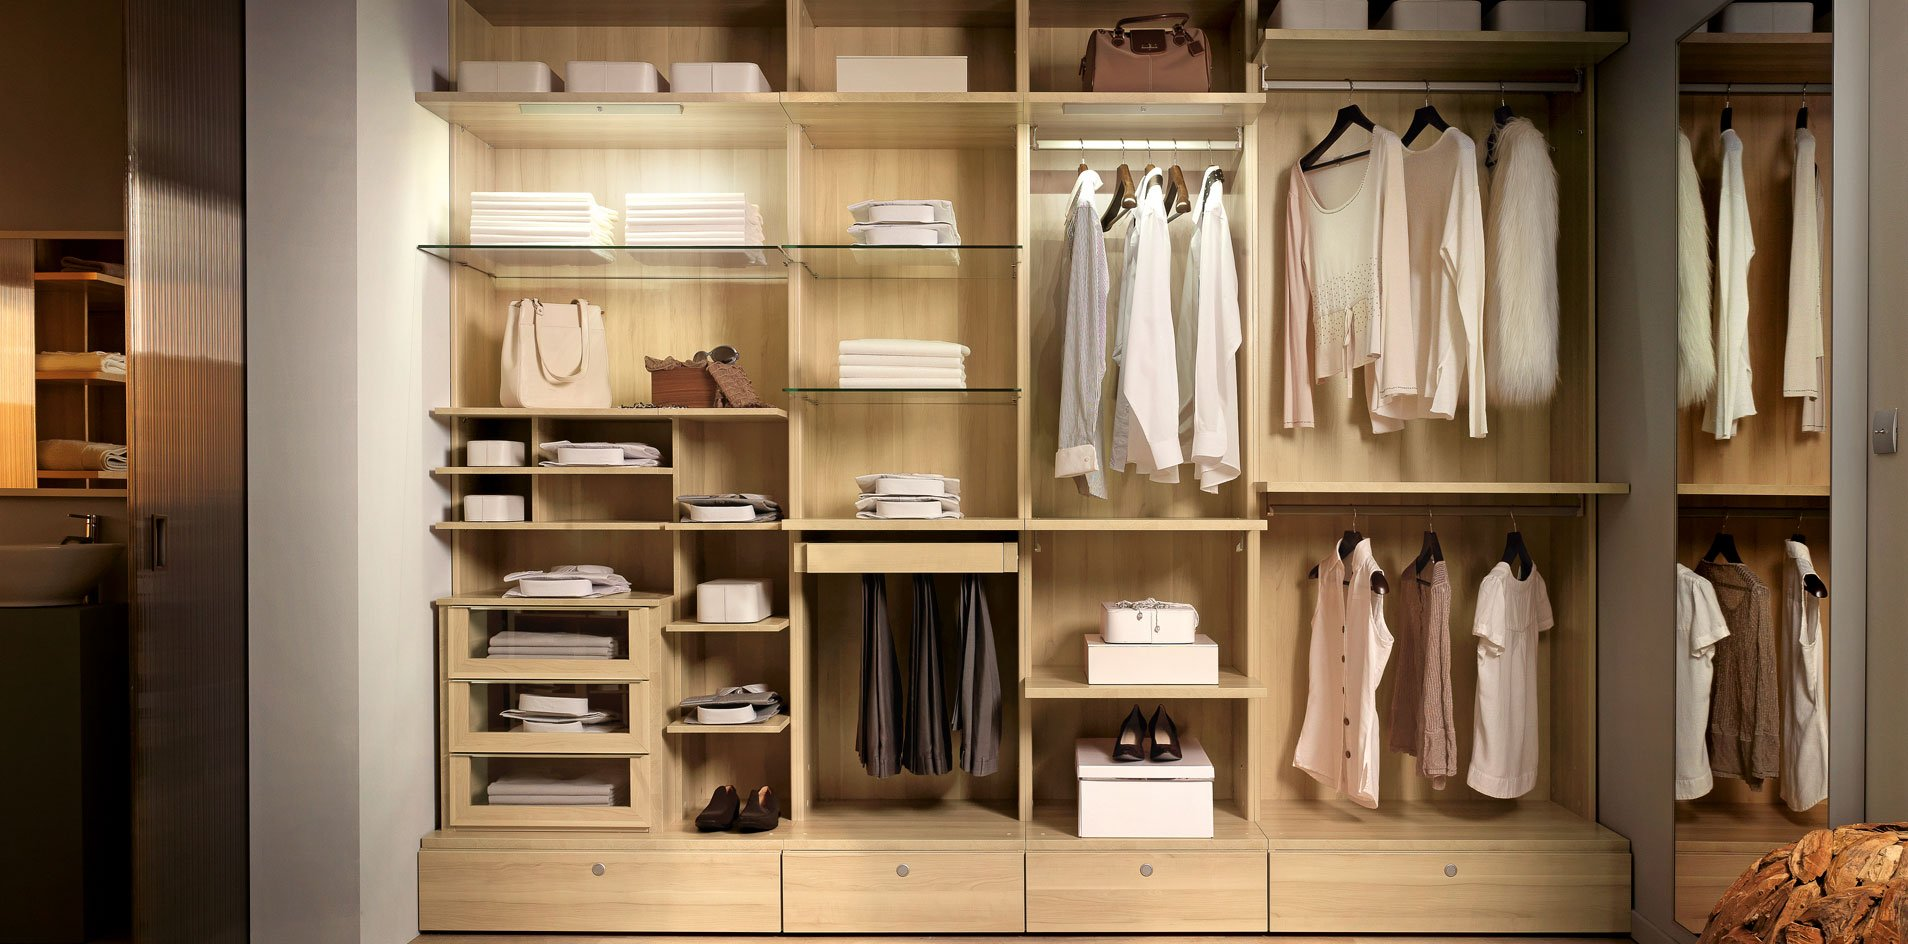 Le dressing - Amenagement placard chambre ikea ...